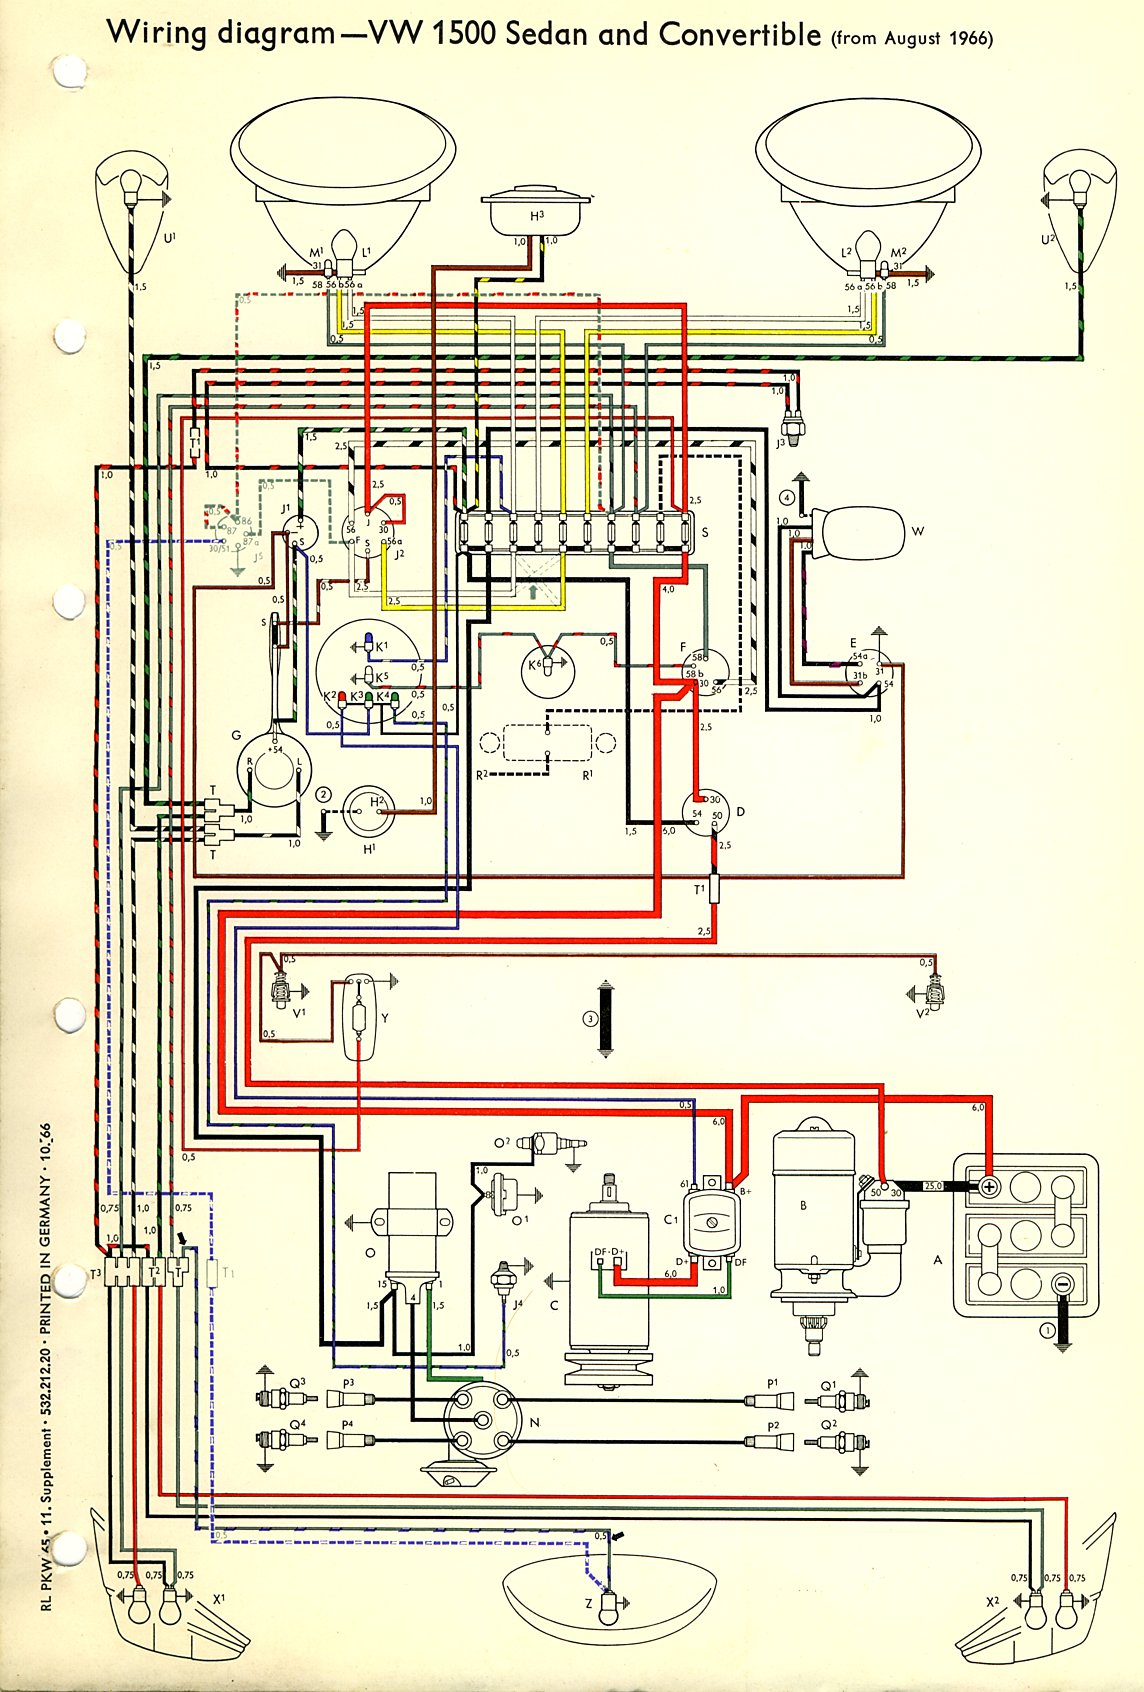 Vw Beetle Wiring Diagram : Thesamba type wiring diagrams